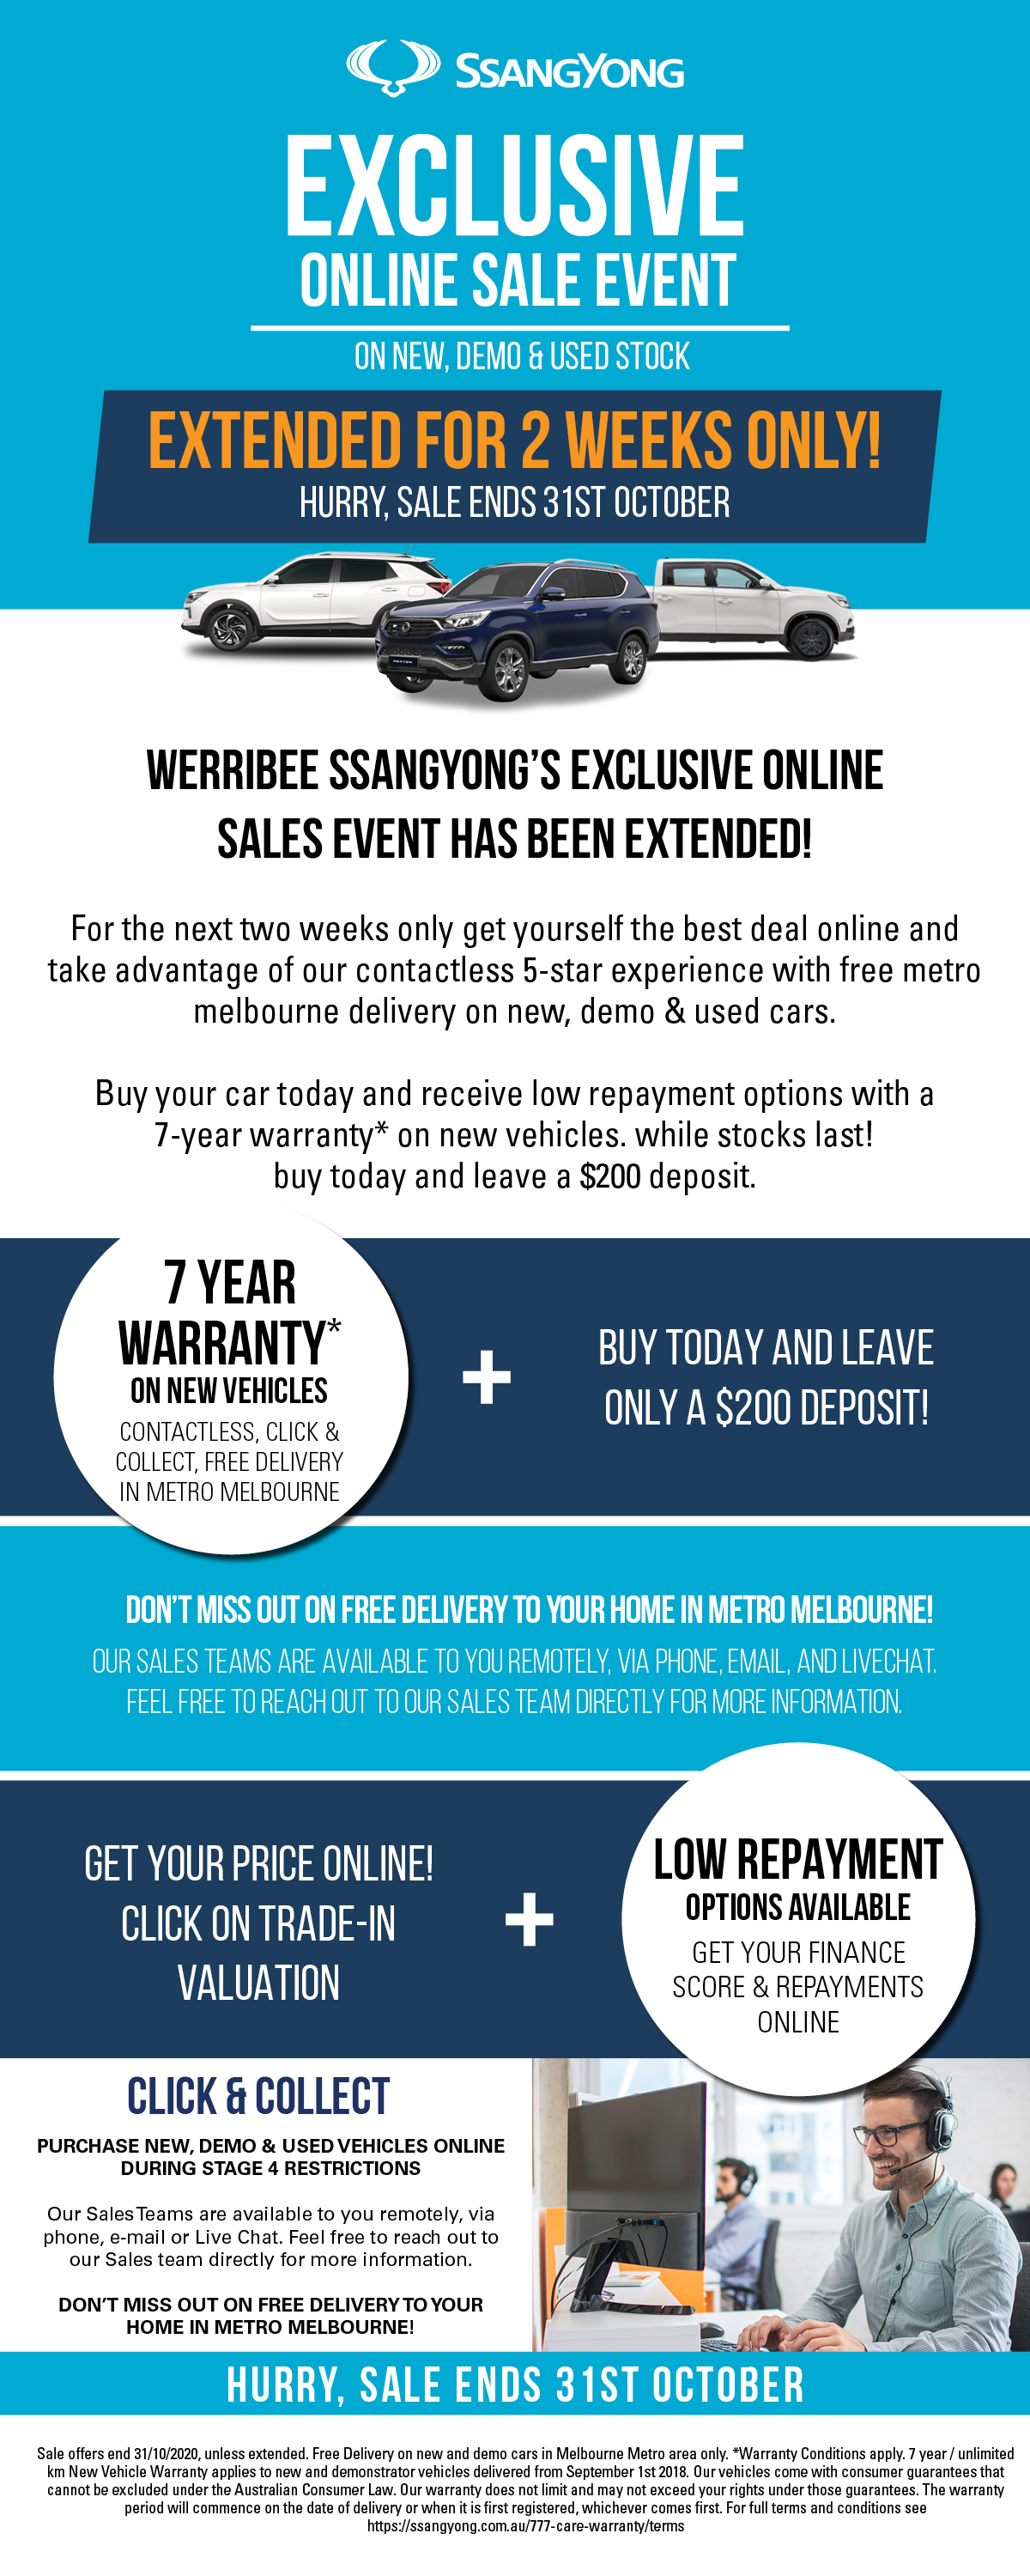 Exclusive Online Sale Event Extended